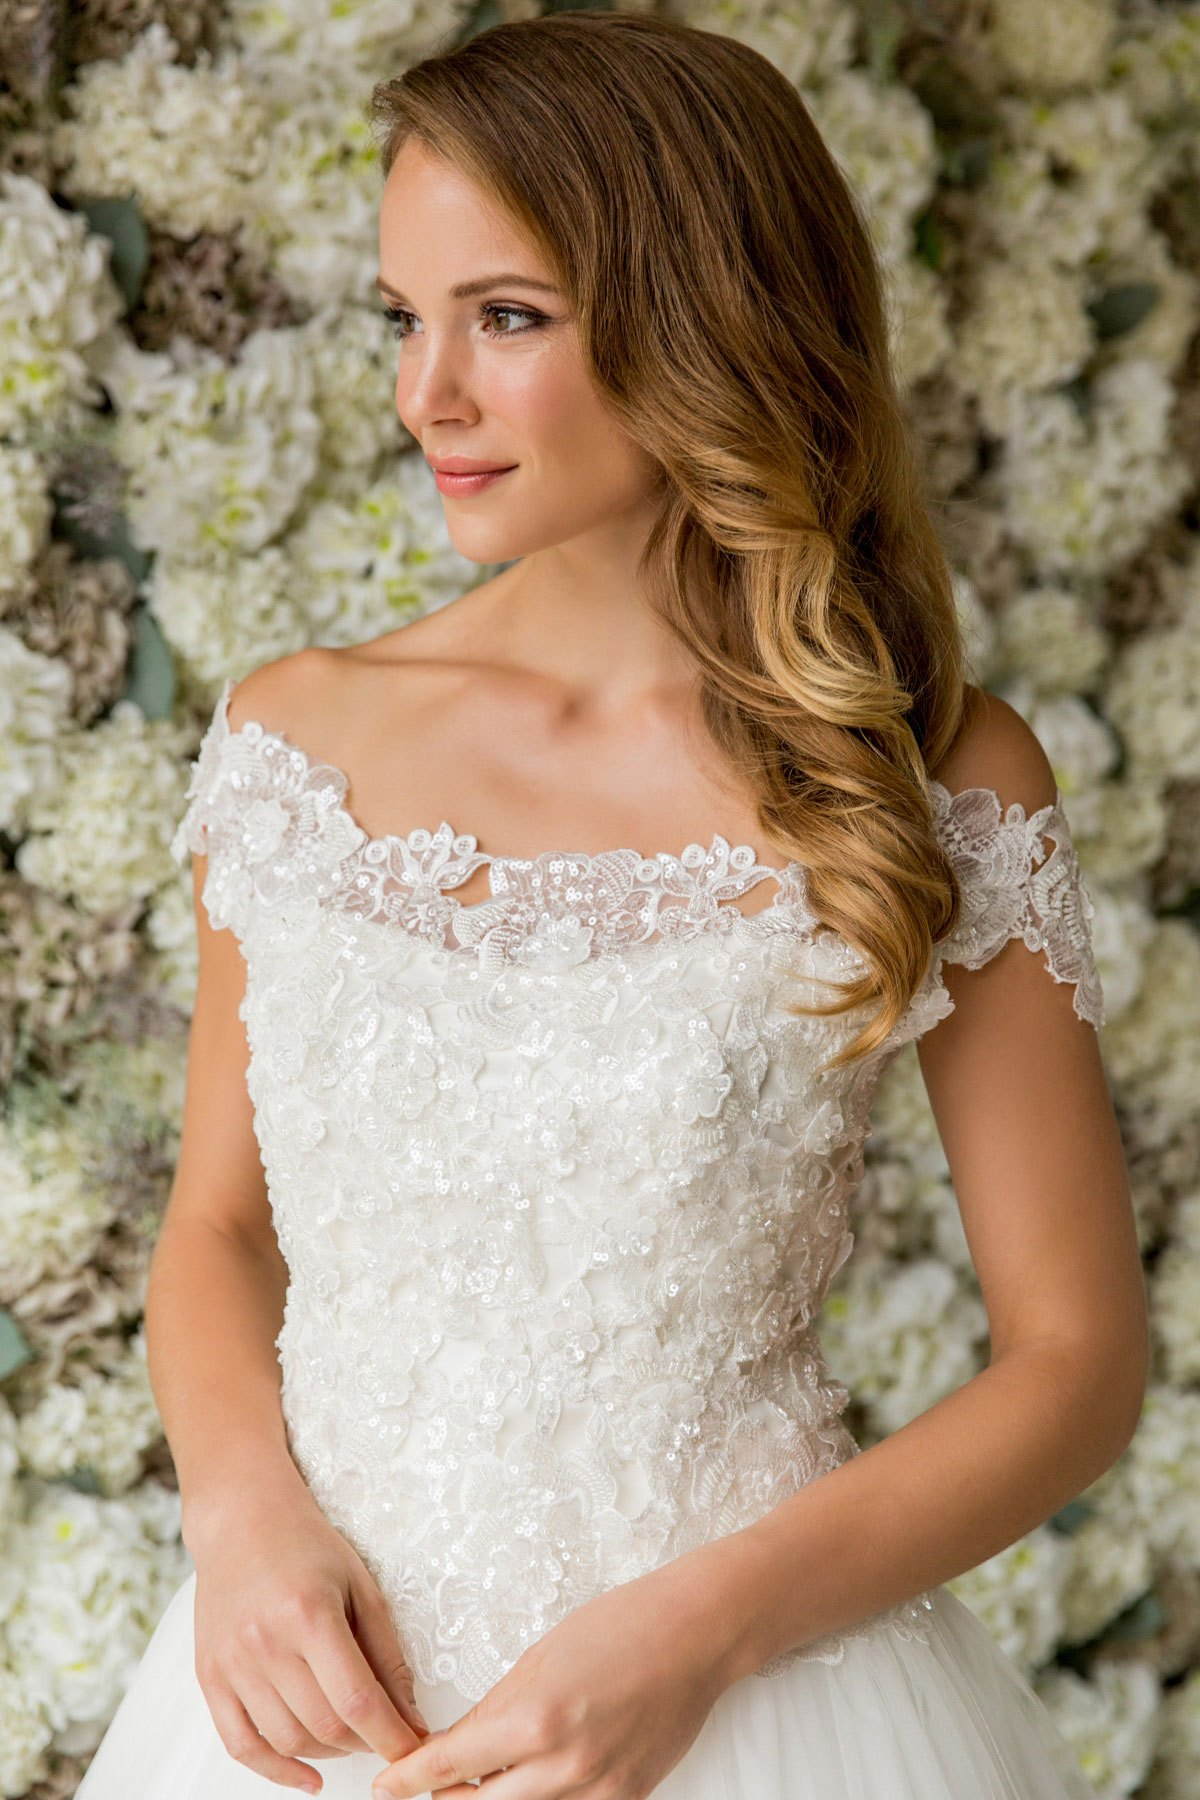 3D Beaded Lace Flower Top